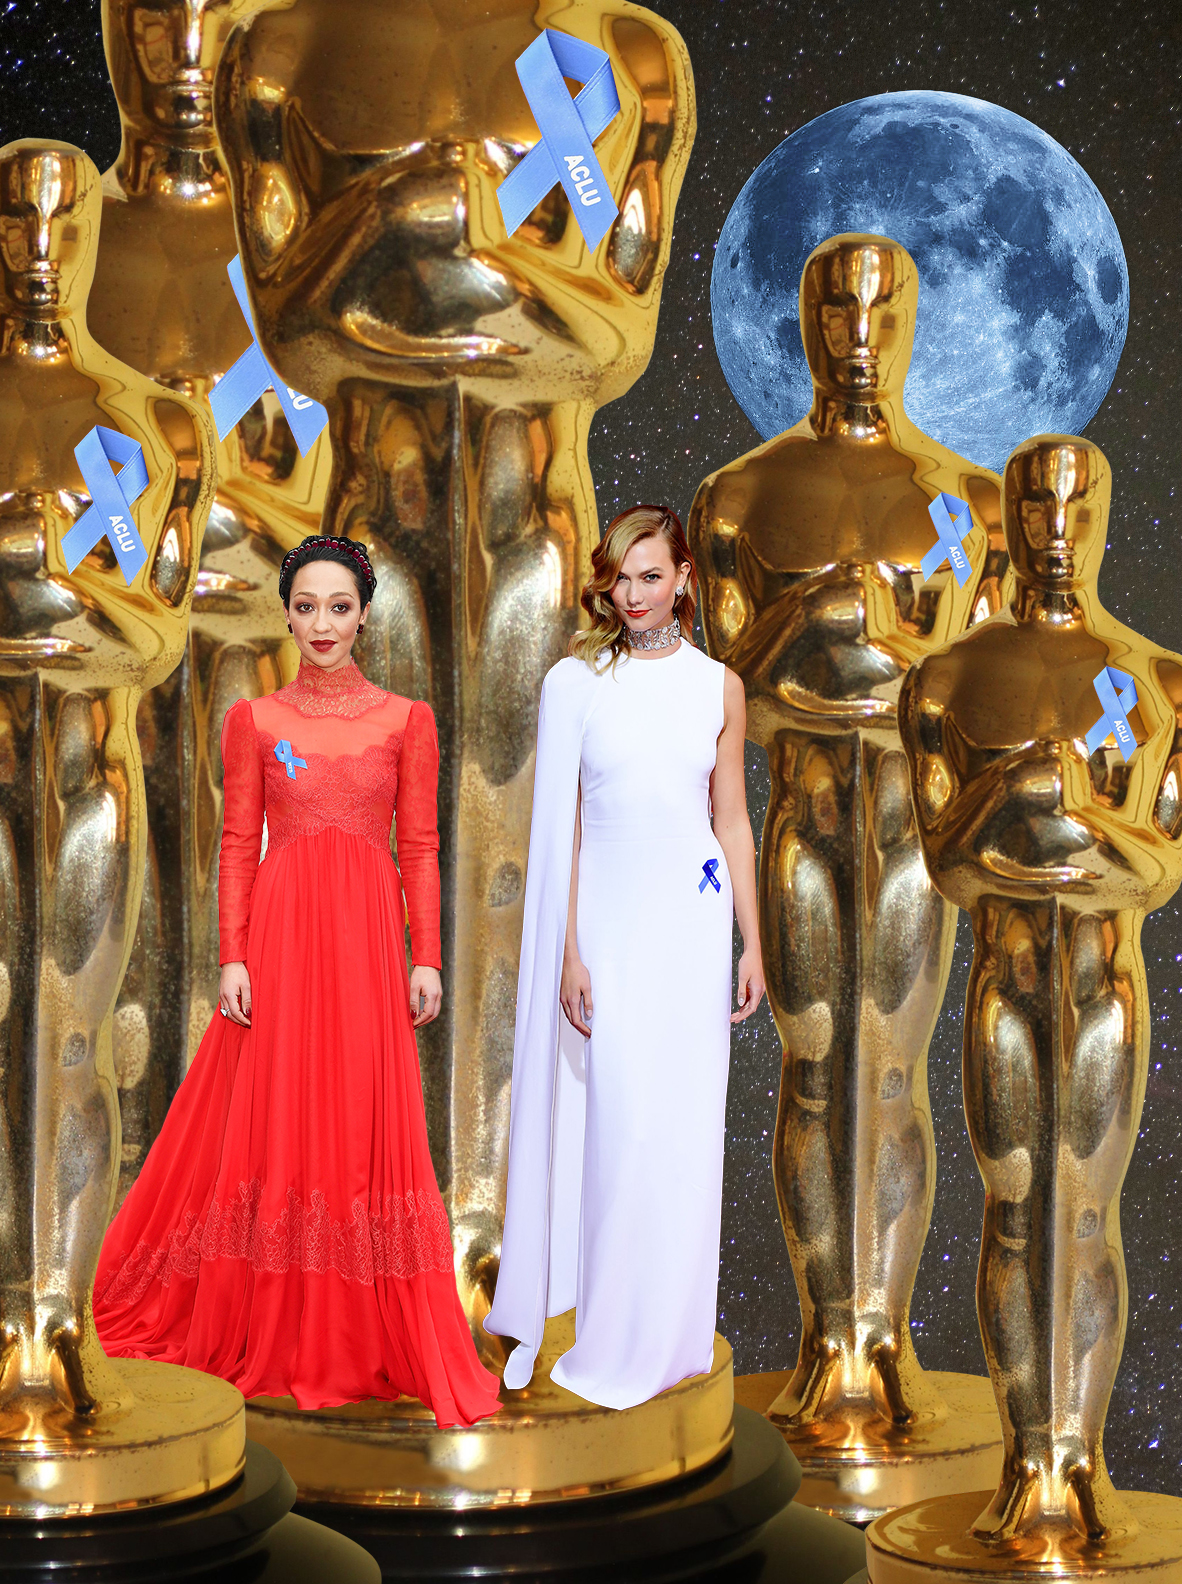 Ruth Negga wears lacy red Valentino and Karlie Kloss wears sleek white Stella McCartney